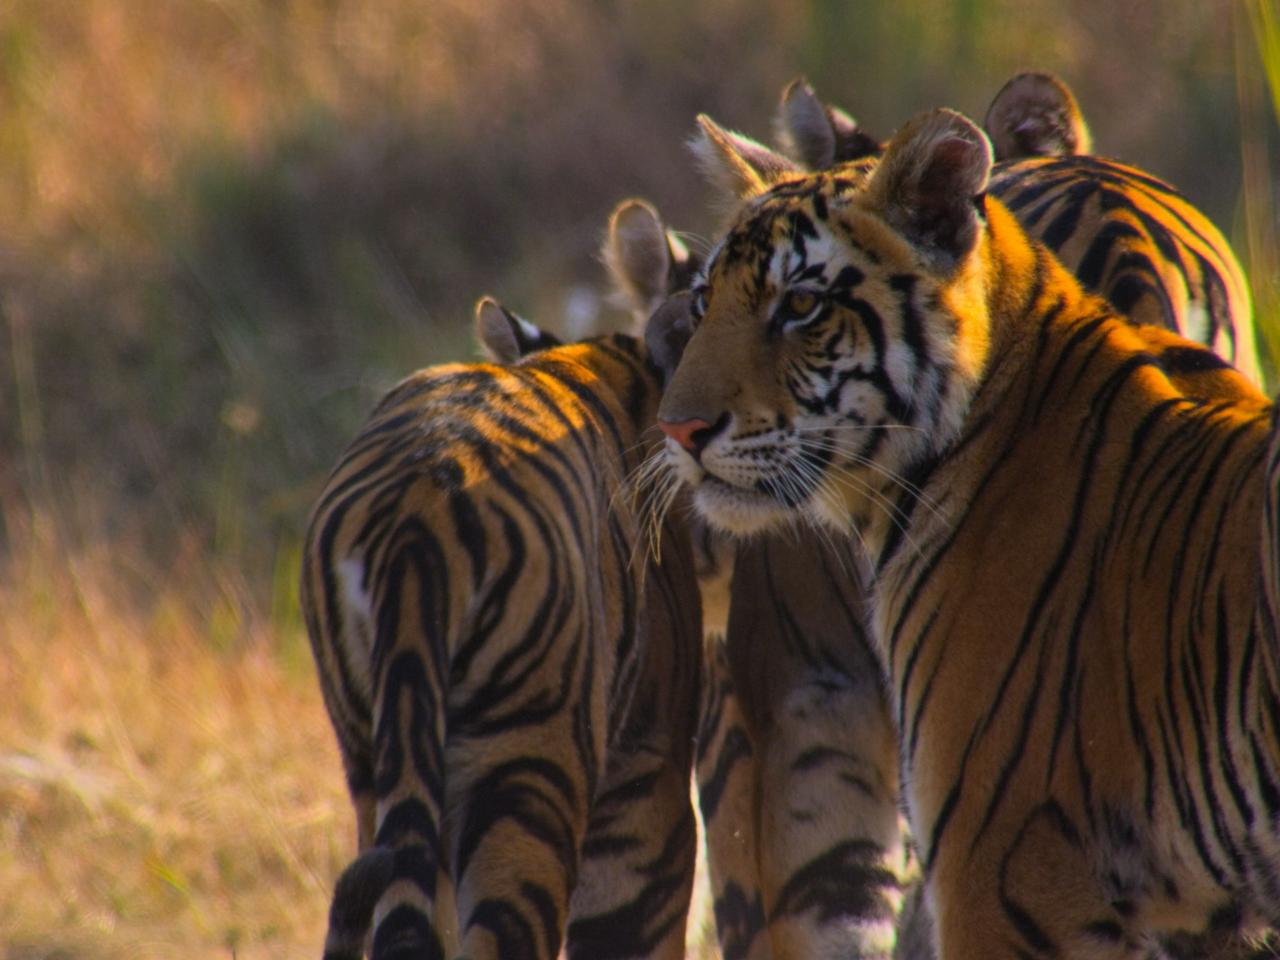 Tiger cubs with mother, Kanha National Park, India SCREEN GRAB